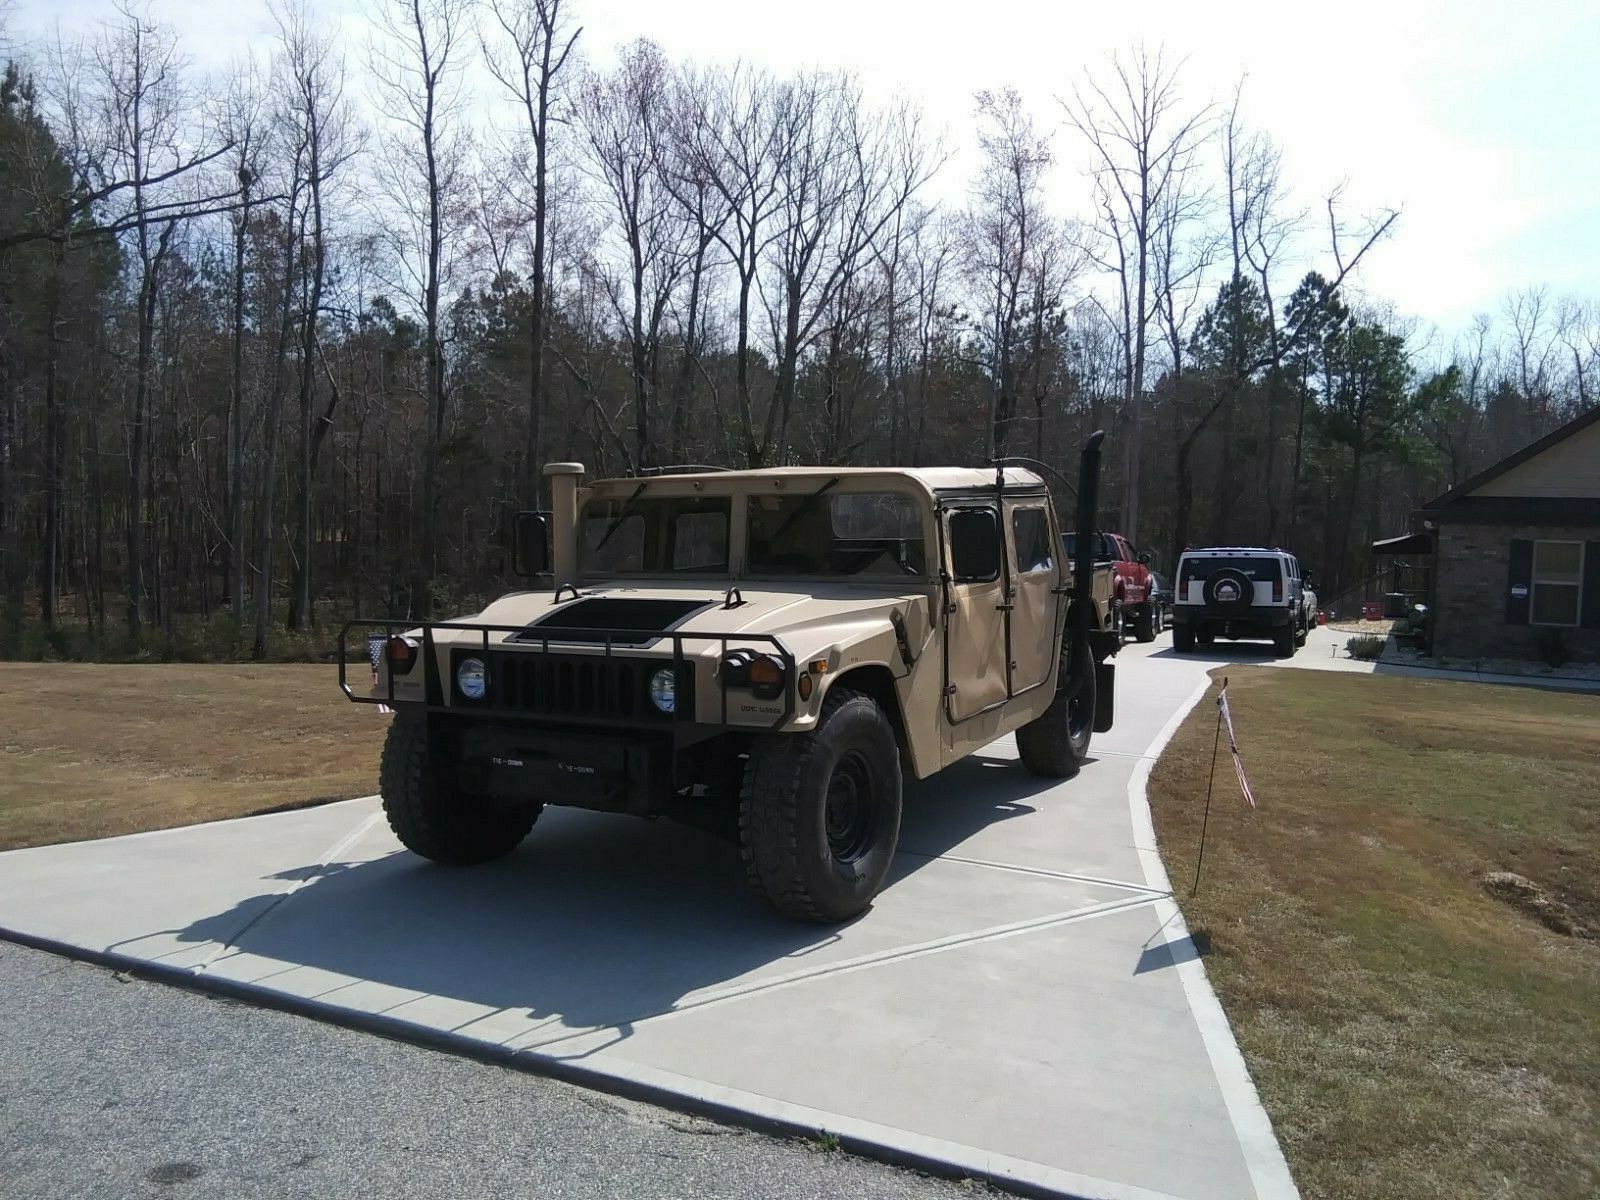 1993 US Military HMMWV M1038 A2 Four door truck